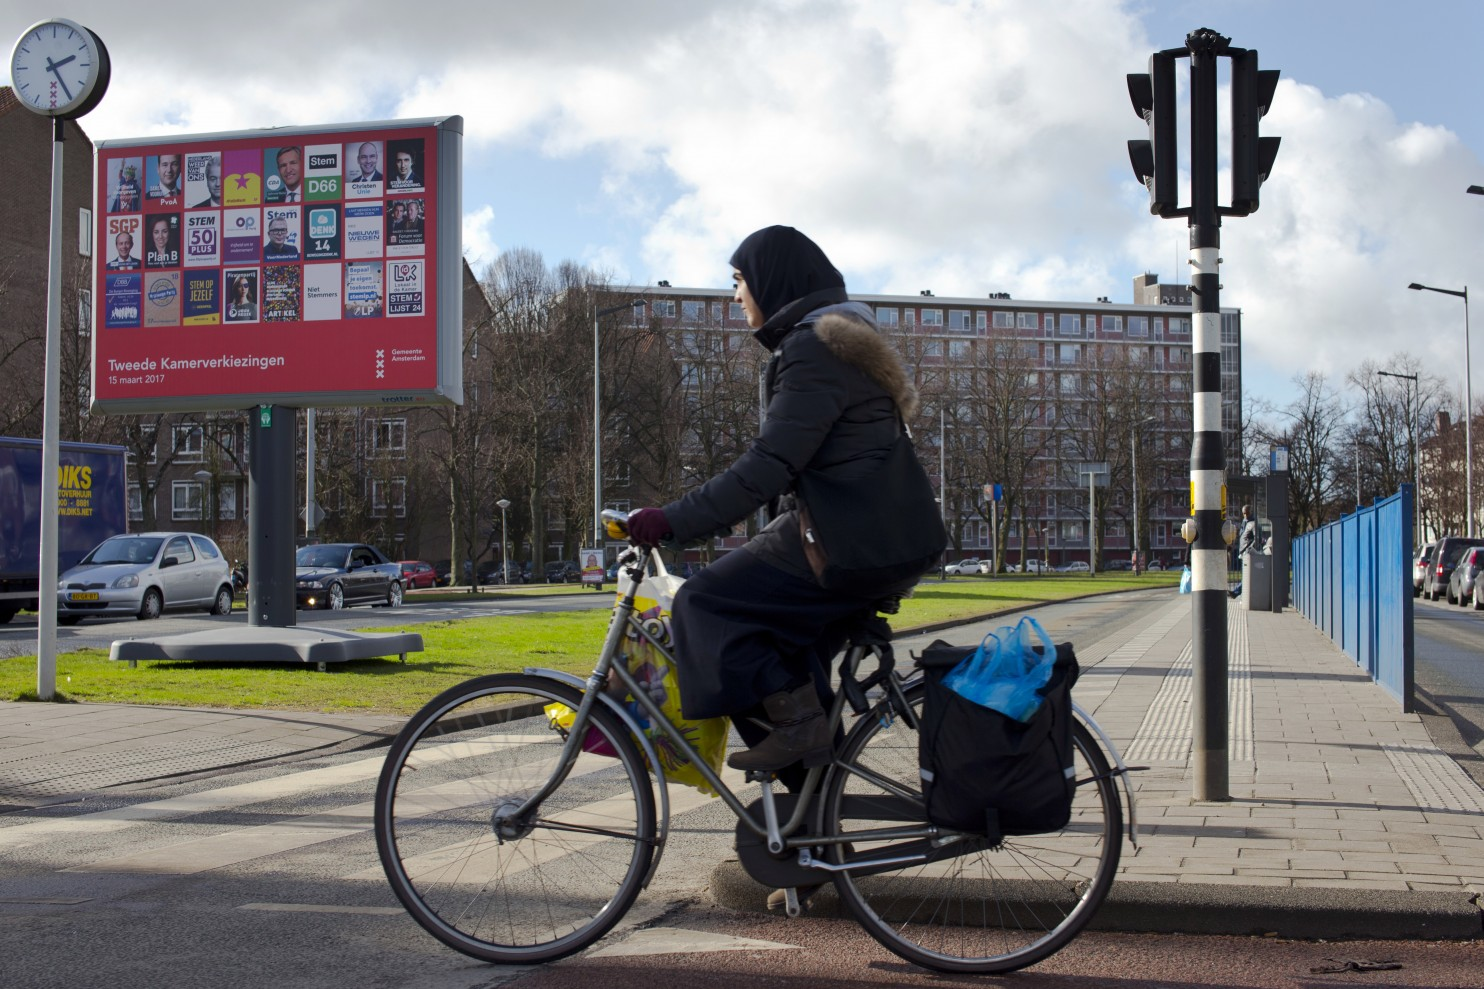 Headscarfs are almost as common as bicycles in Amsterdam. Image: Peter Dejong/Associated Press